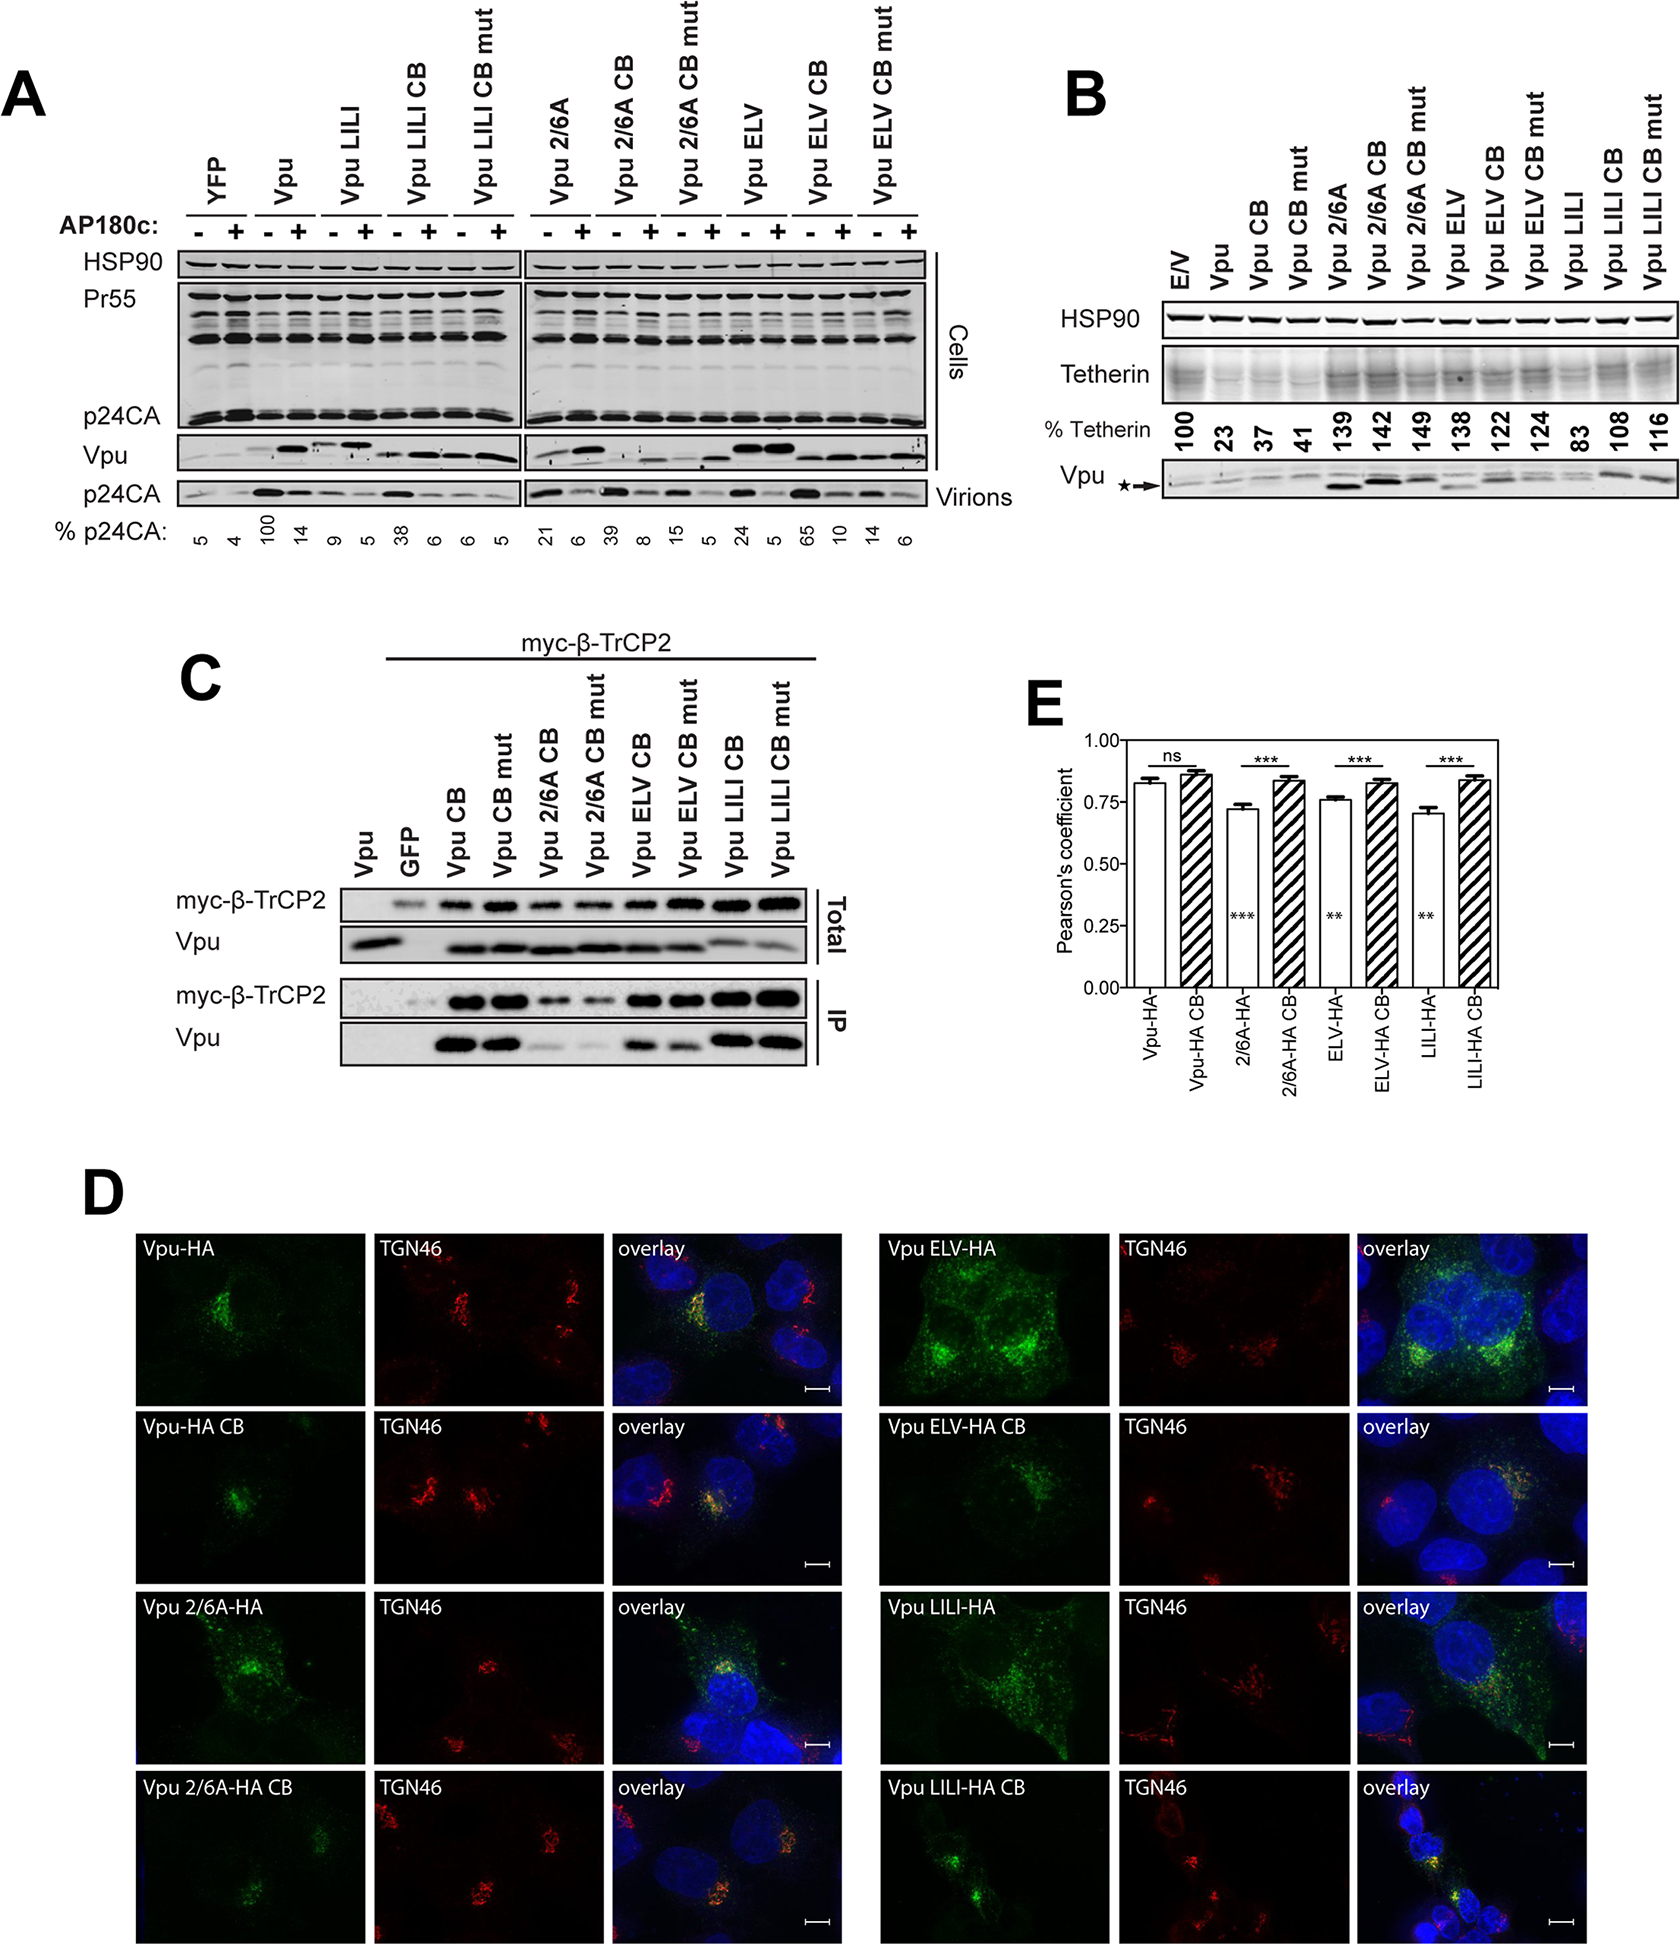 Clathrin binding rescues Vpu localization without restoring β-TrCP binding or tetherin degradation.